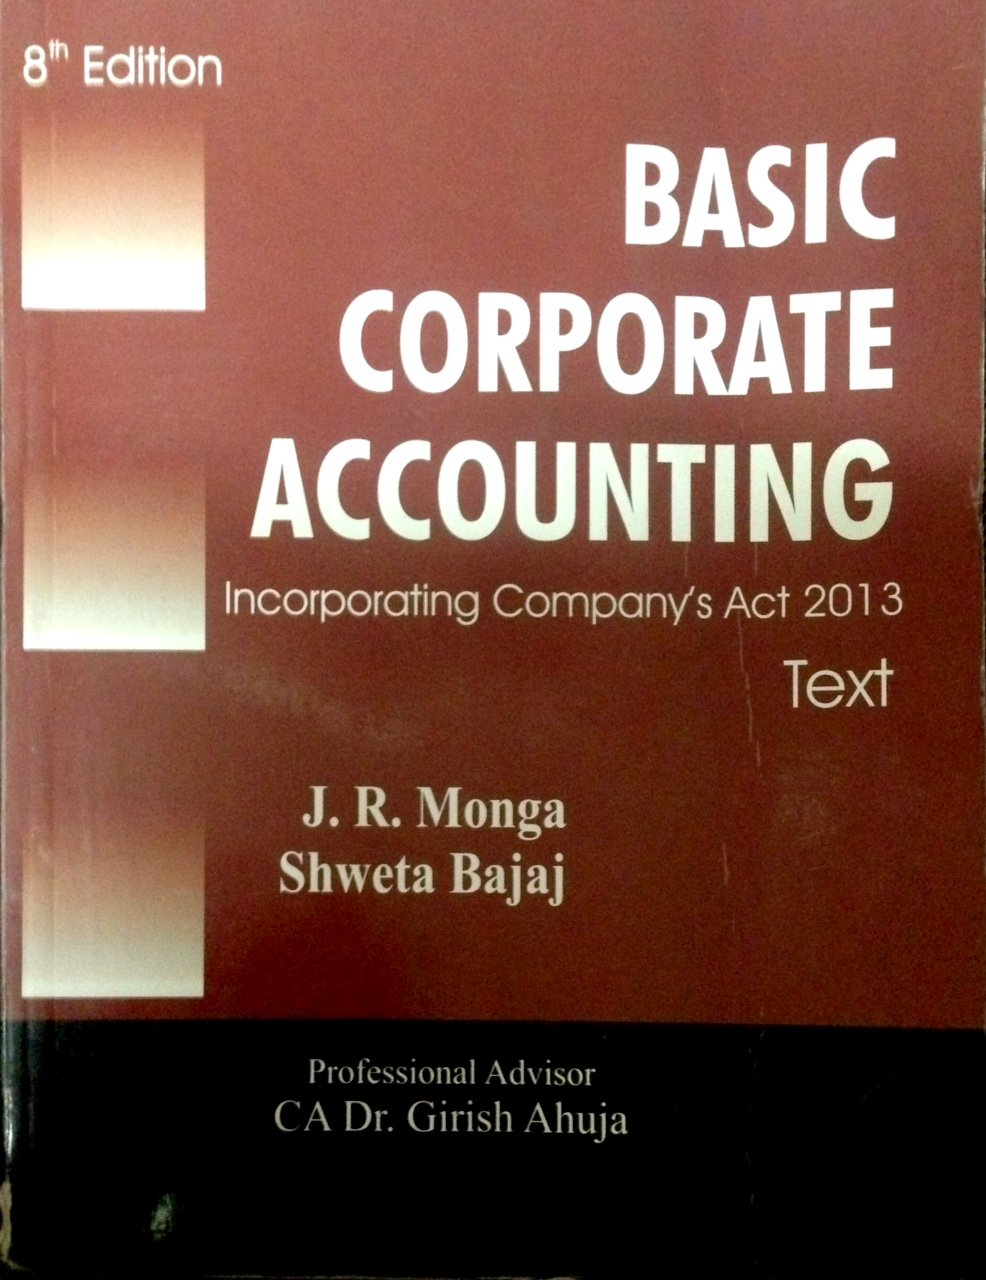 accounting assignments online best accounting online course resume  buy fundamentals of corporate accounting text and assignments basic corporate accounting 2 volumes